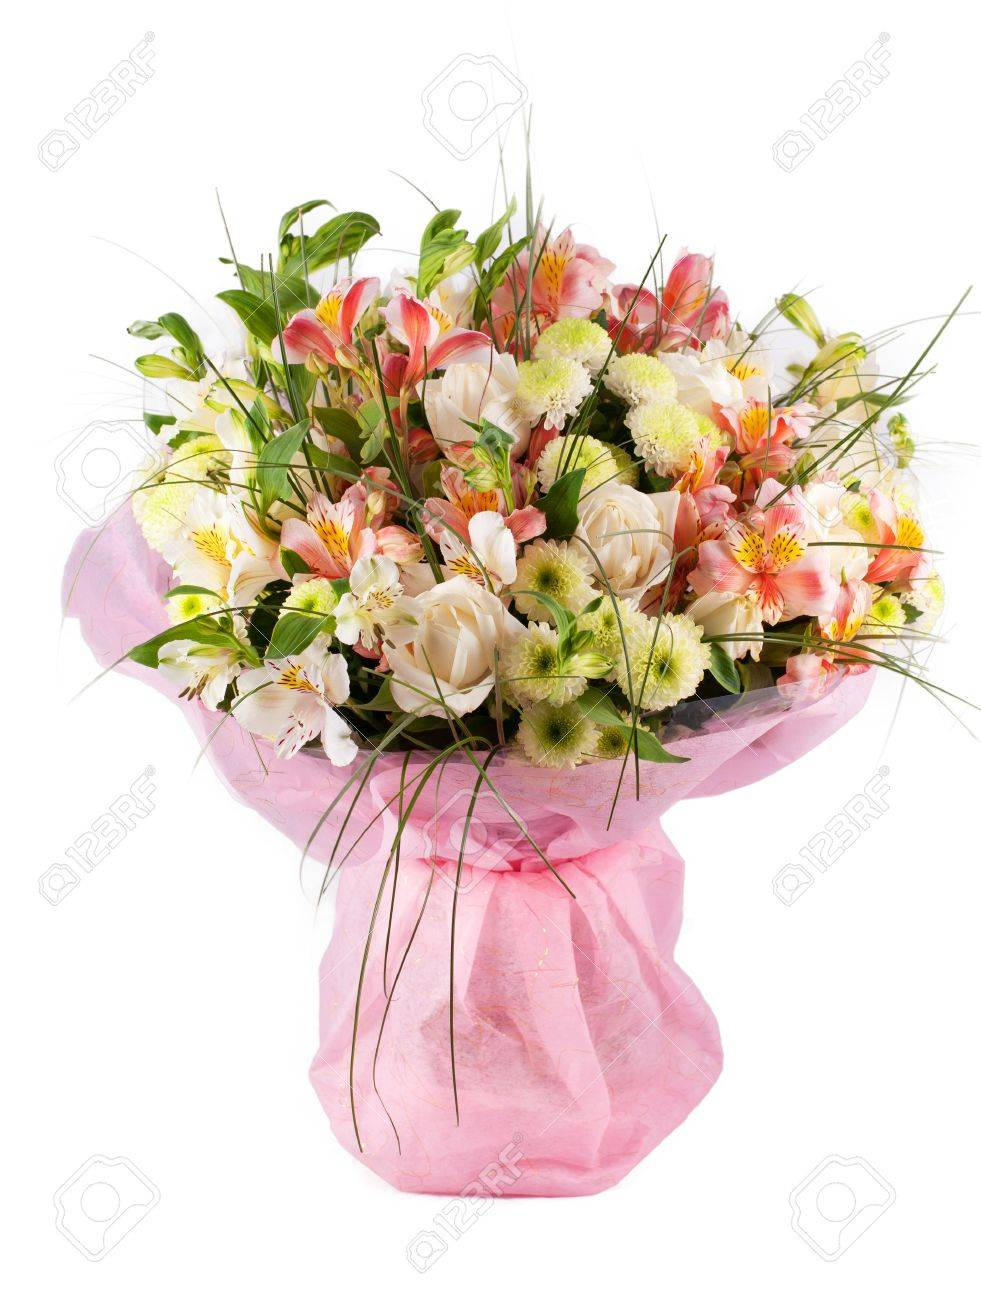 Spring Flowers Bouquet With A Lot Of Different Flowers Stock Photo